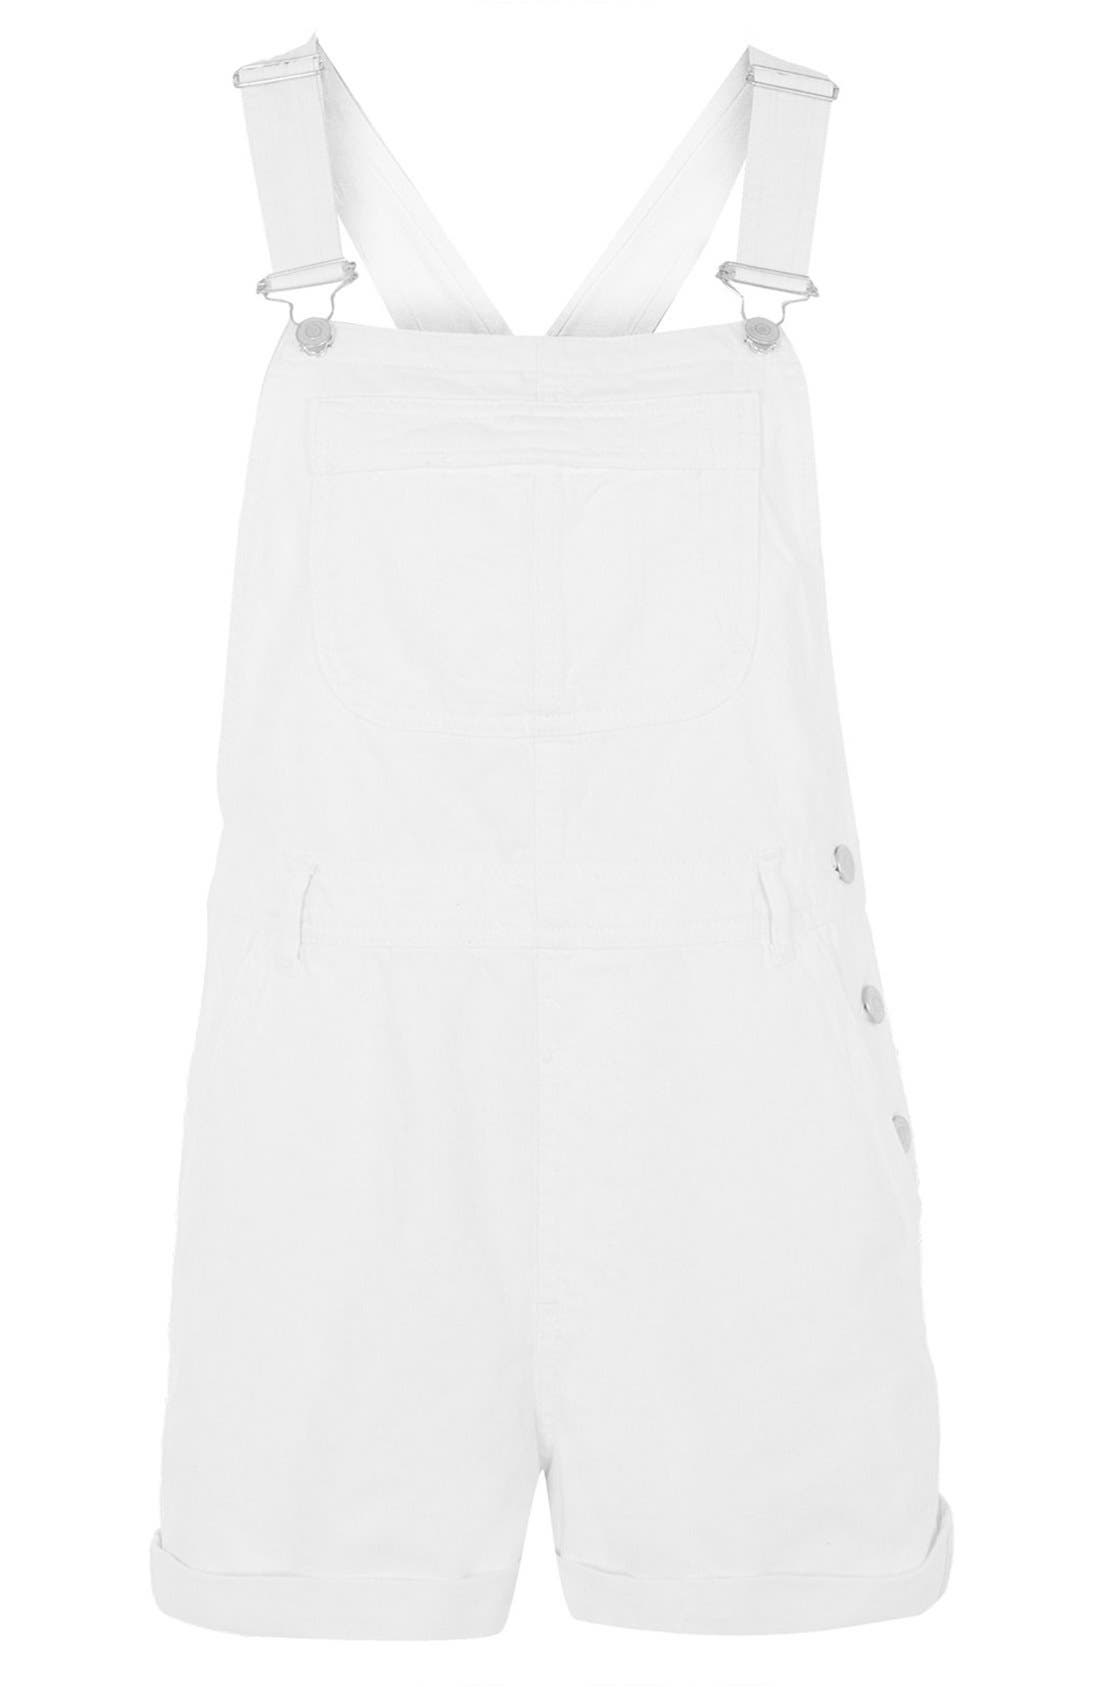 Alternate Image 3  - Topshop Moto Dungaree Short Overalls (White)